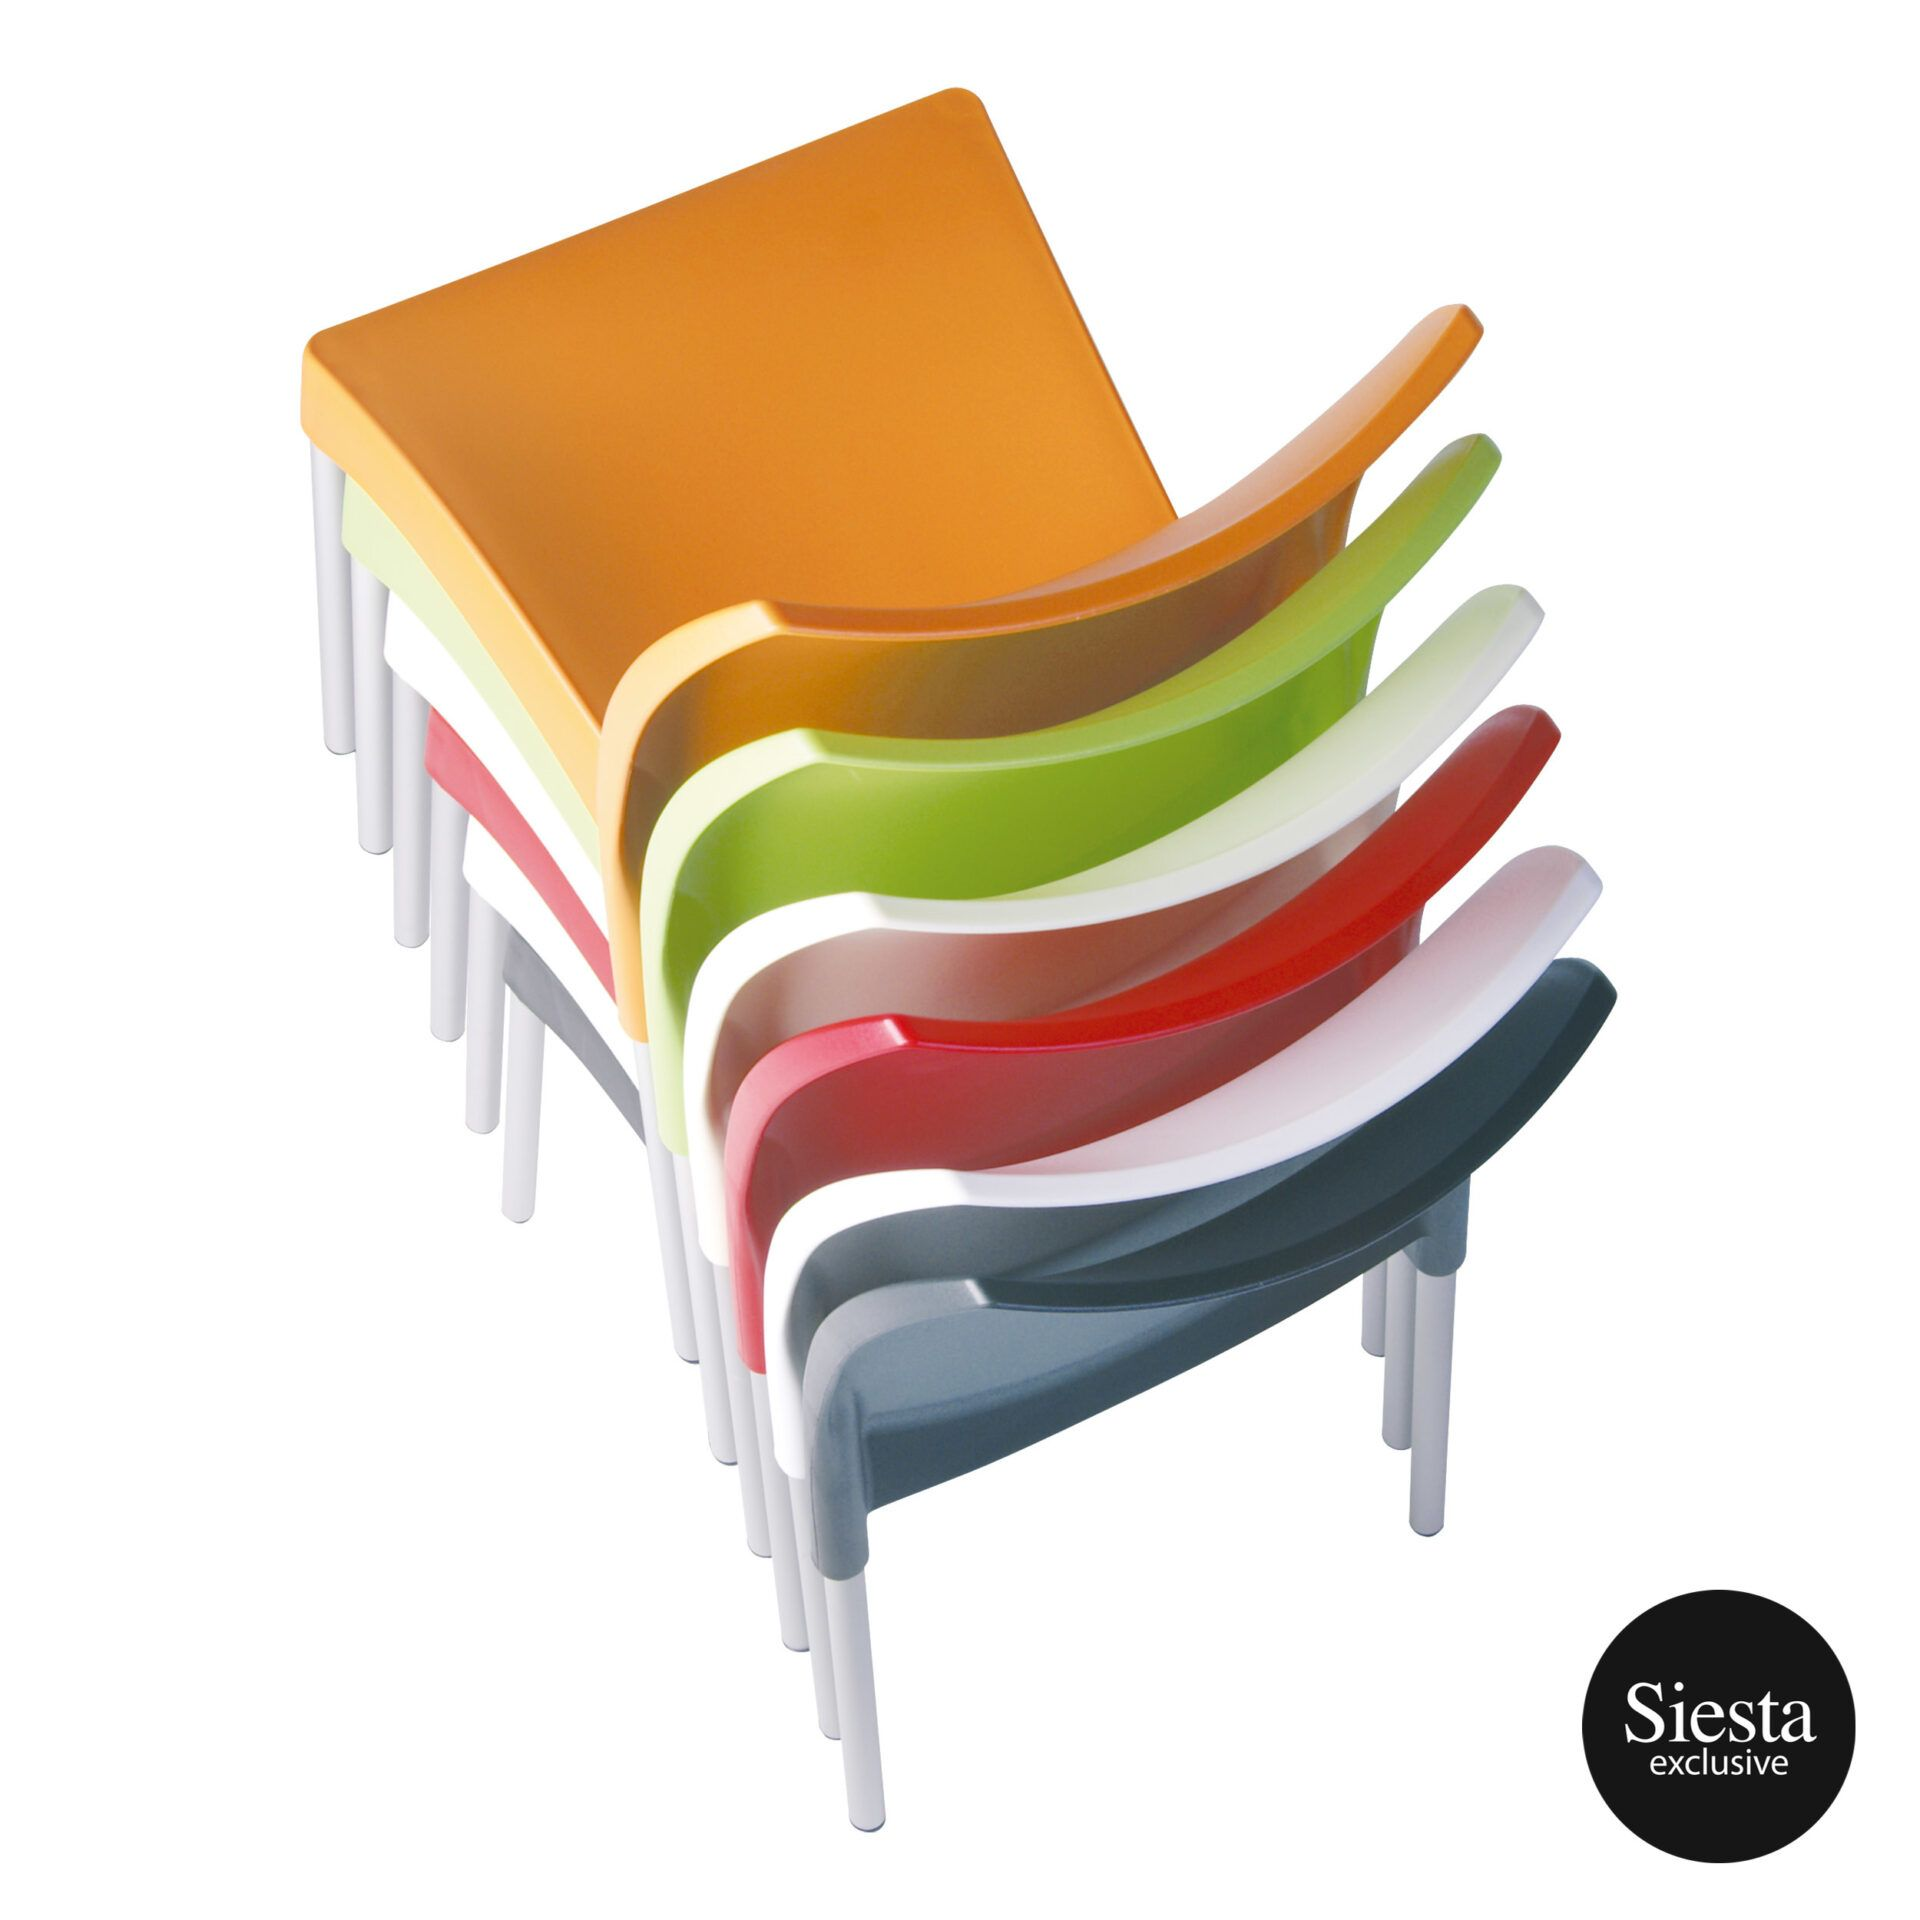 commercial outdoor hospitality seating vita chair stack 01 1